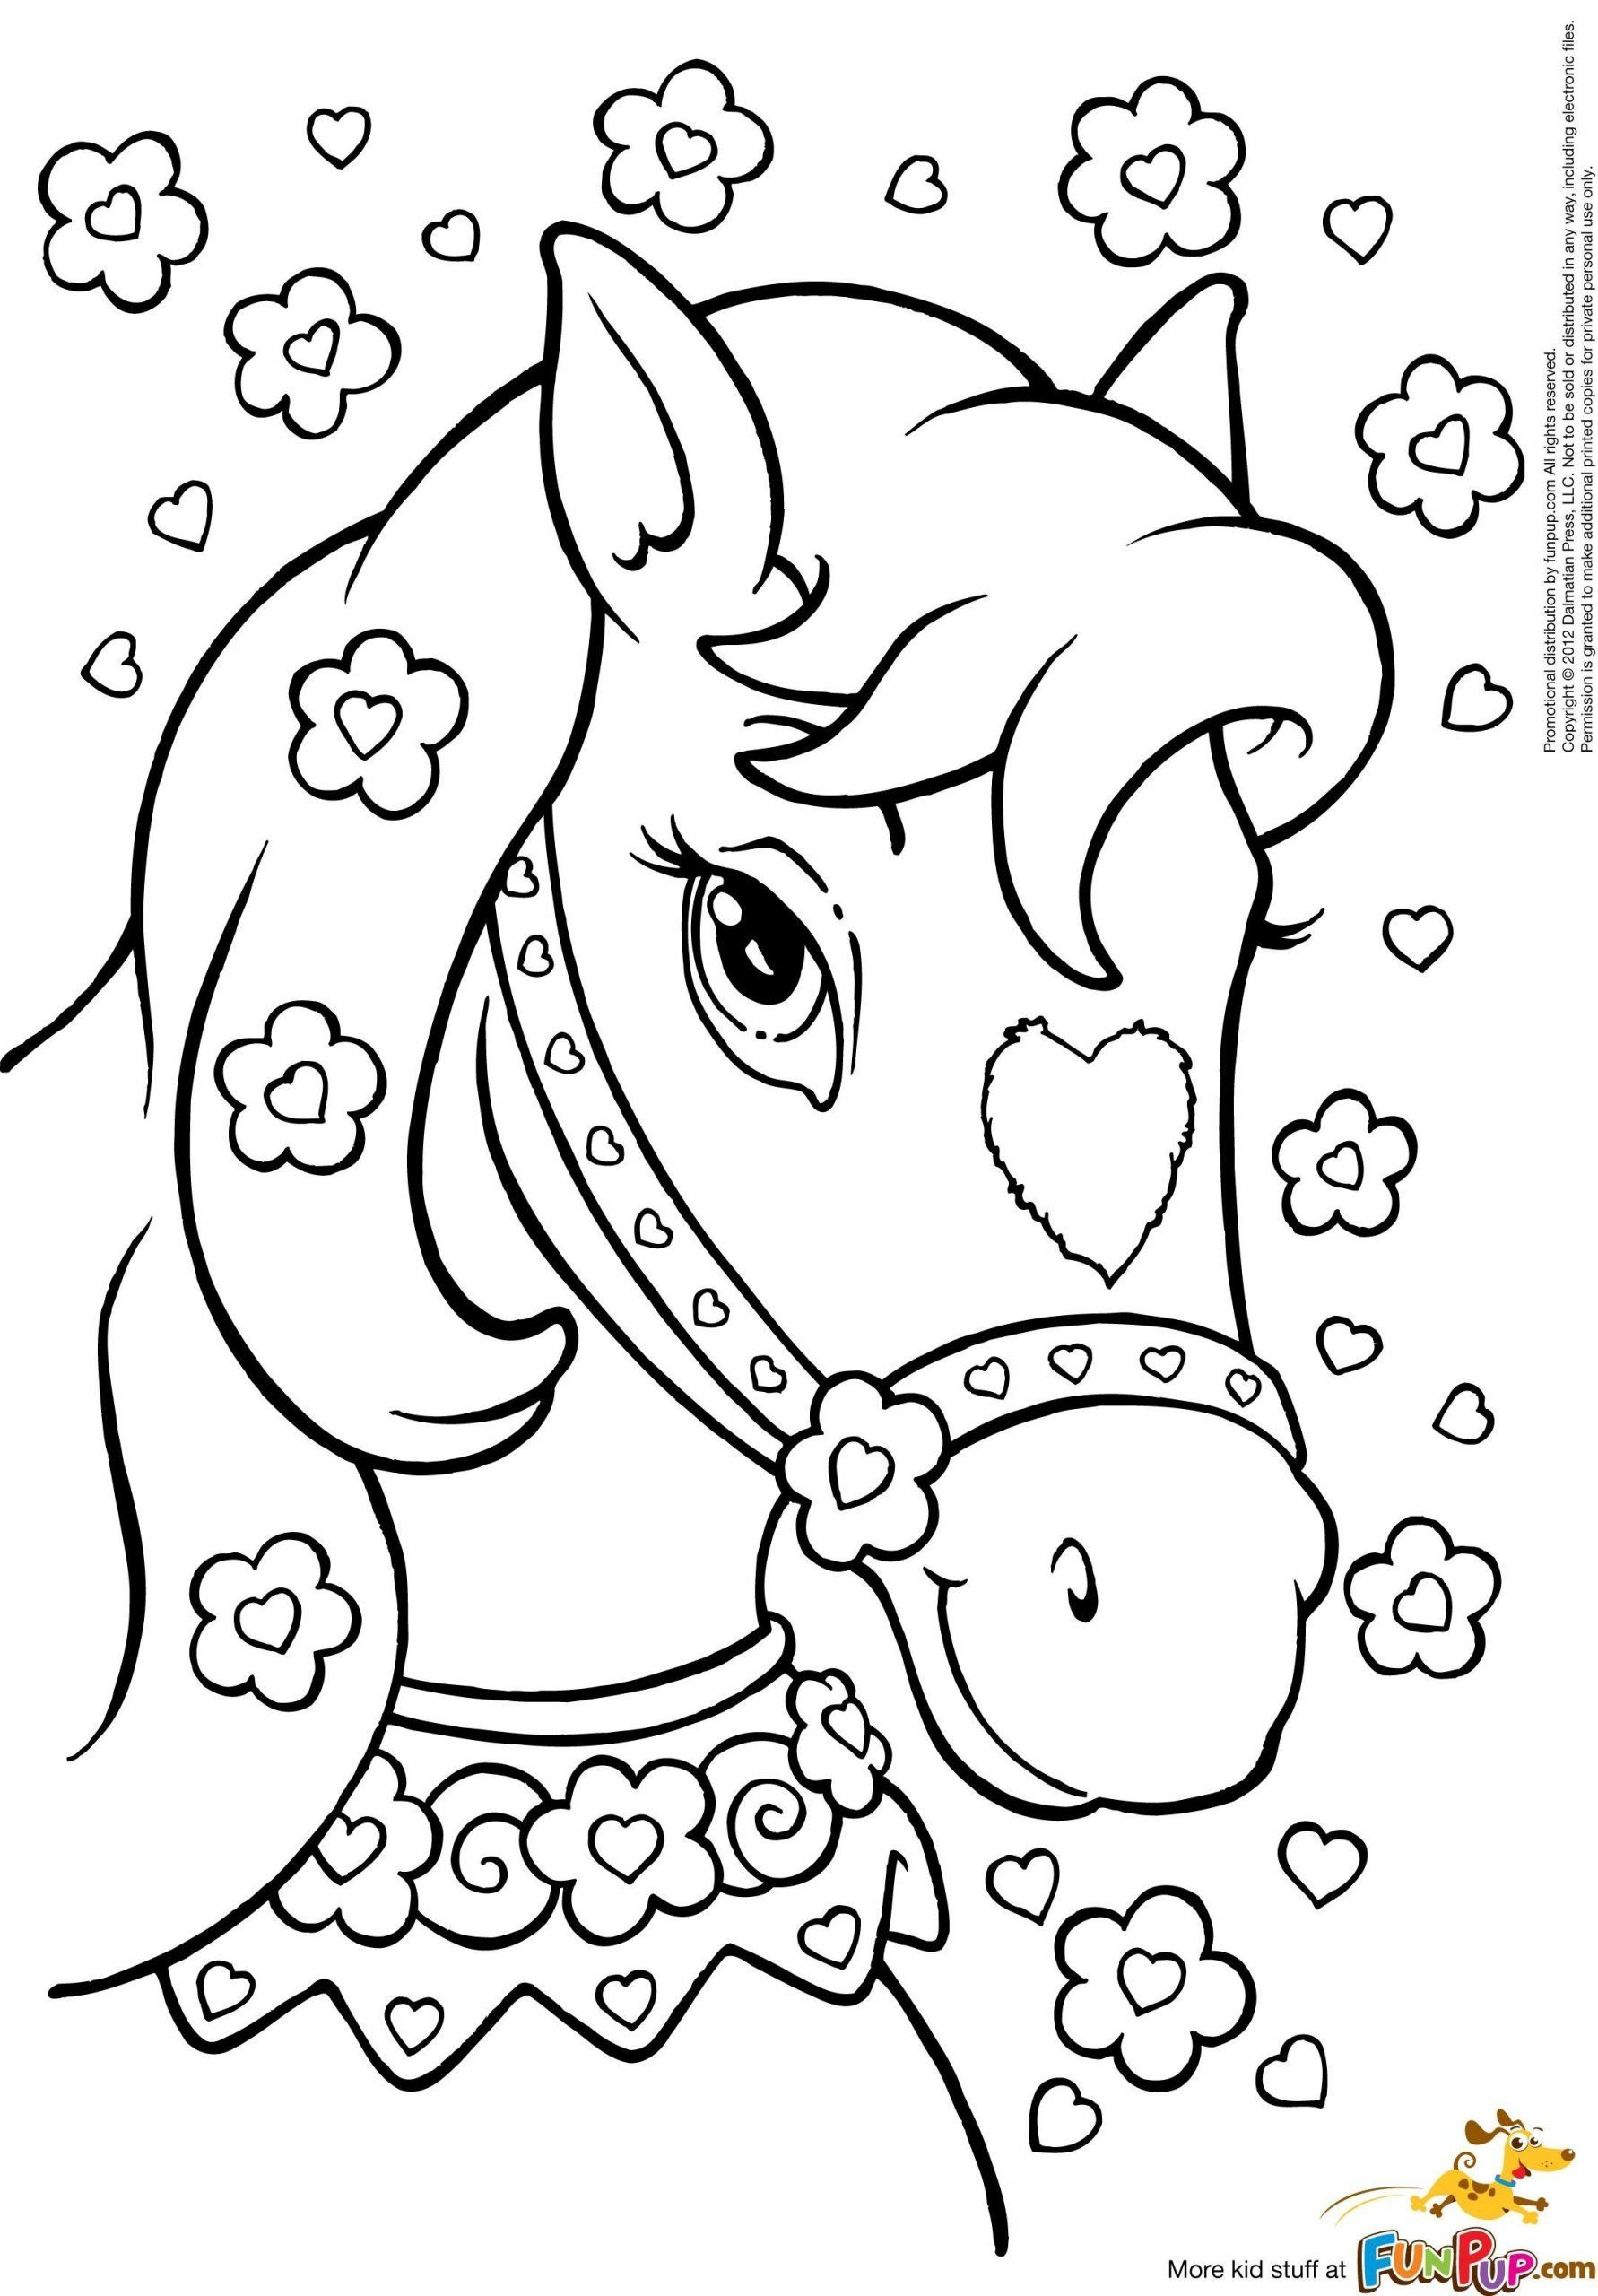 Kids Free Printable Coloring Pages Princess Colouring Pages Page 2 With Images In 2020 Unicorn Coloring Pages Disney Princess Coloring Pages Animal Coloring Pages